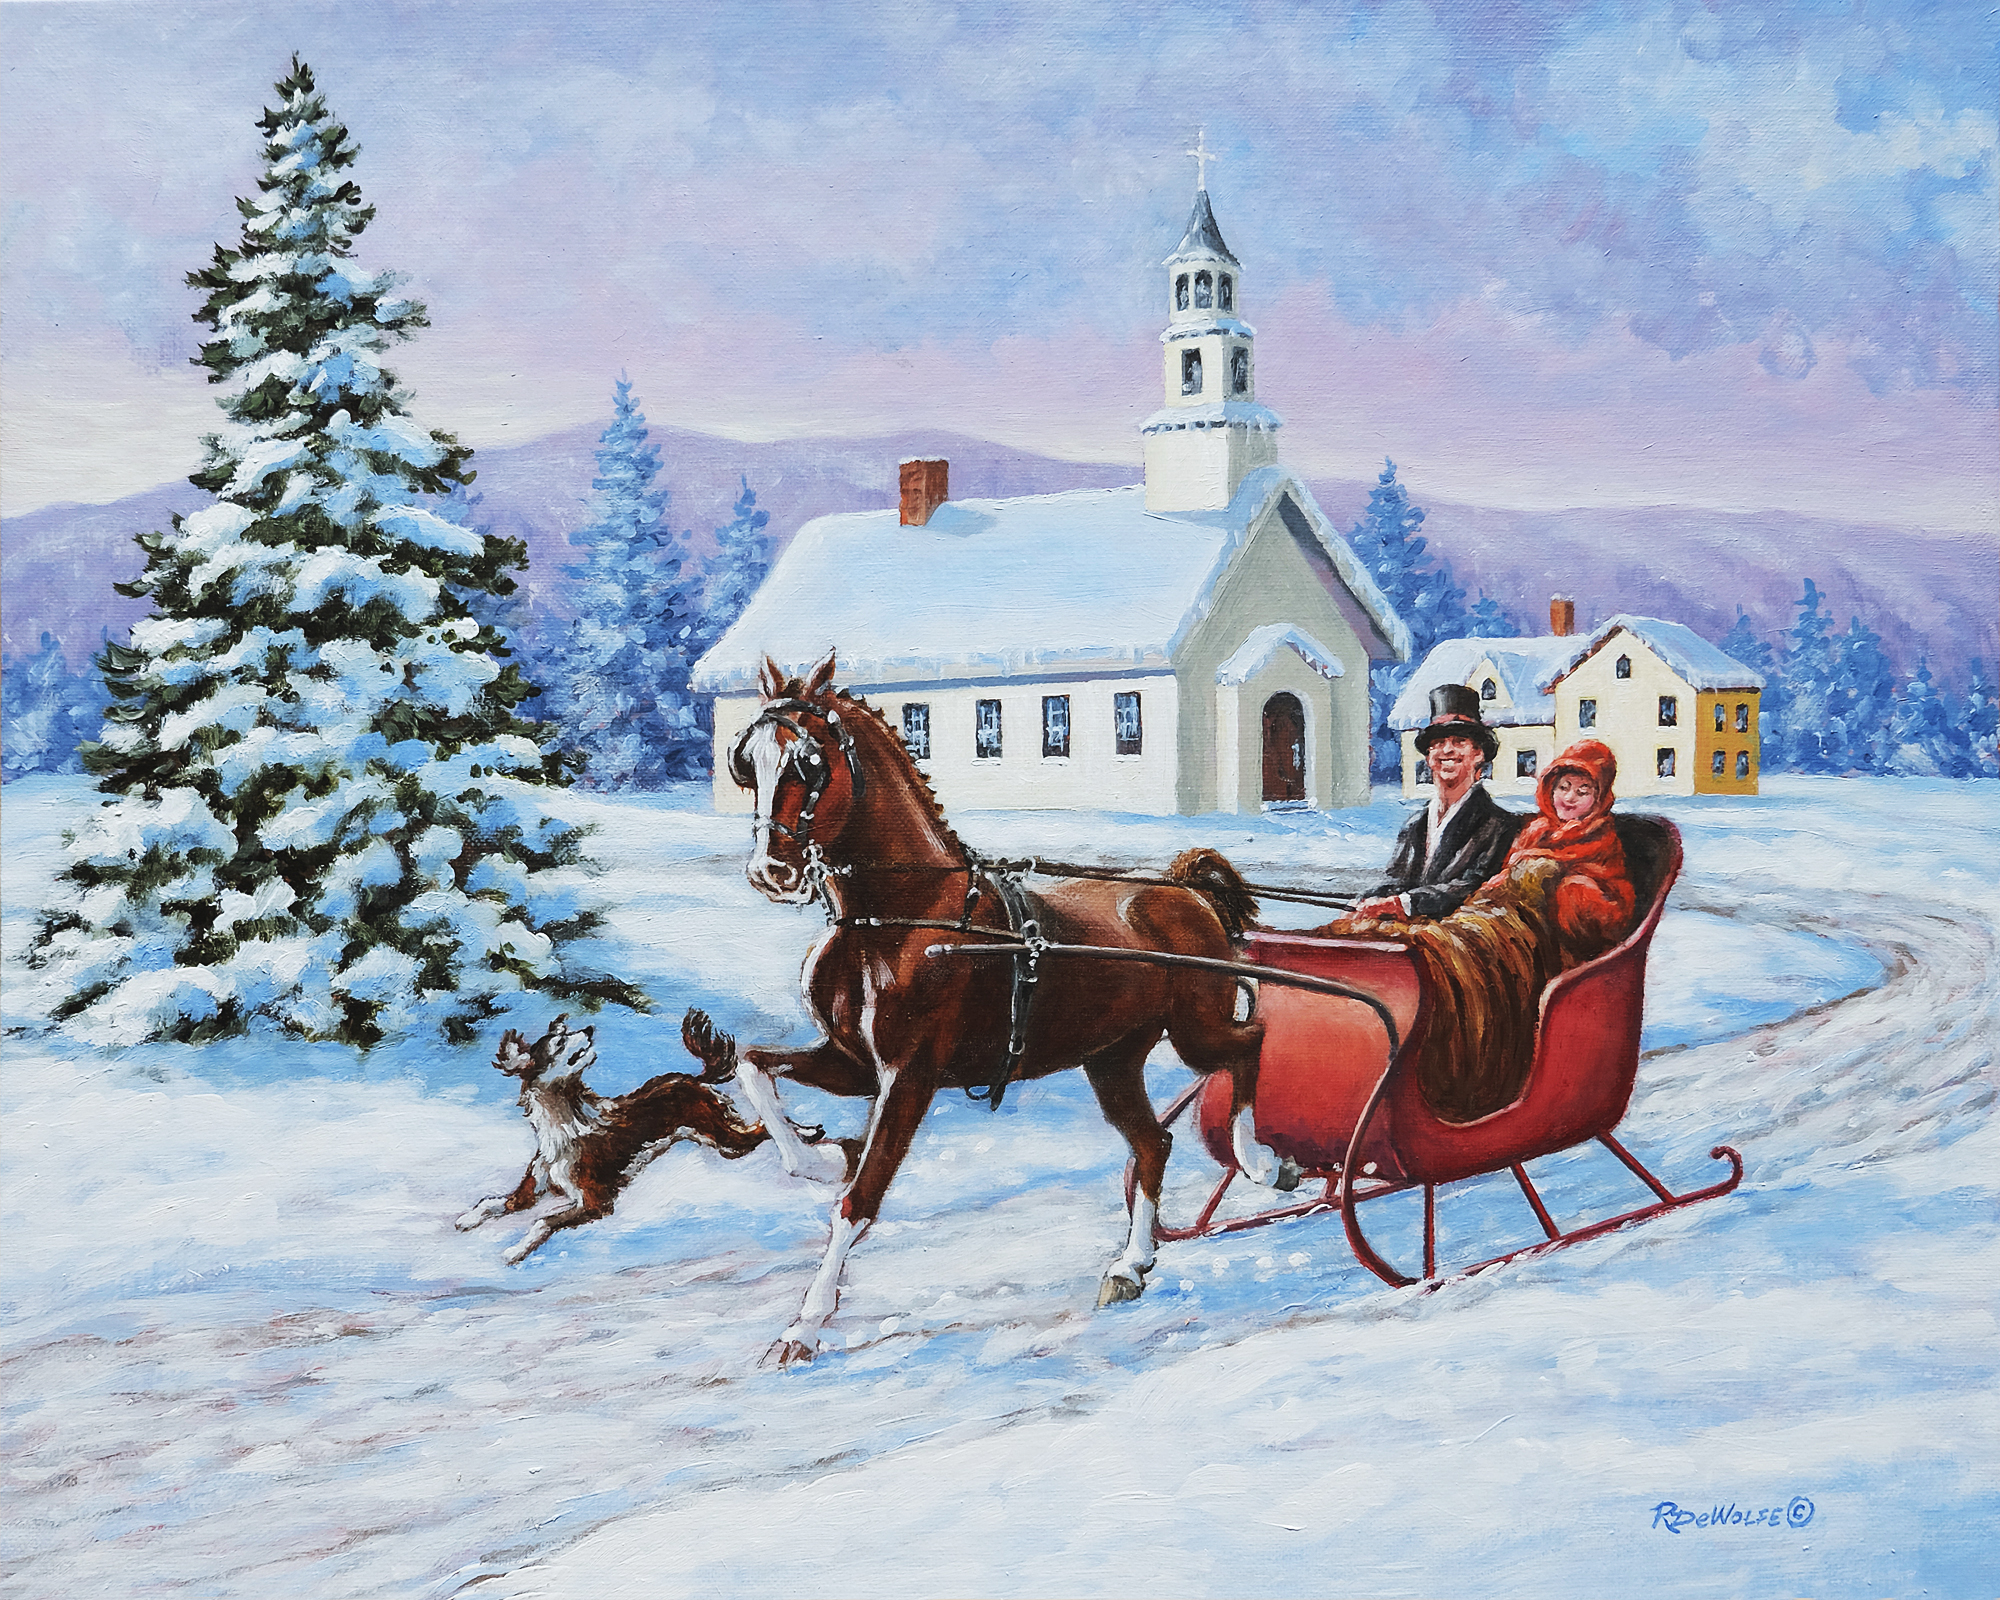 a one horse open sleigh sleigh clipart images free bobsleigh clipart